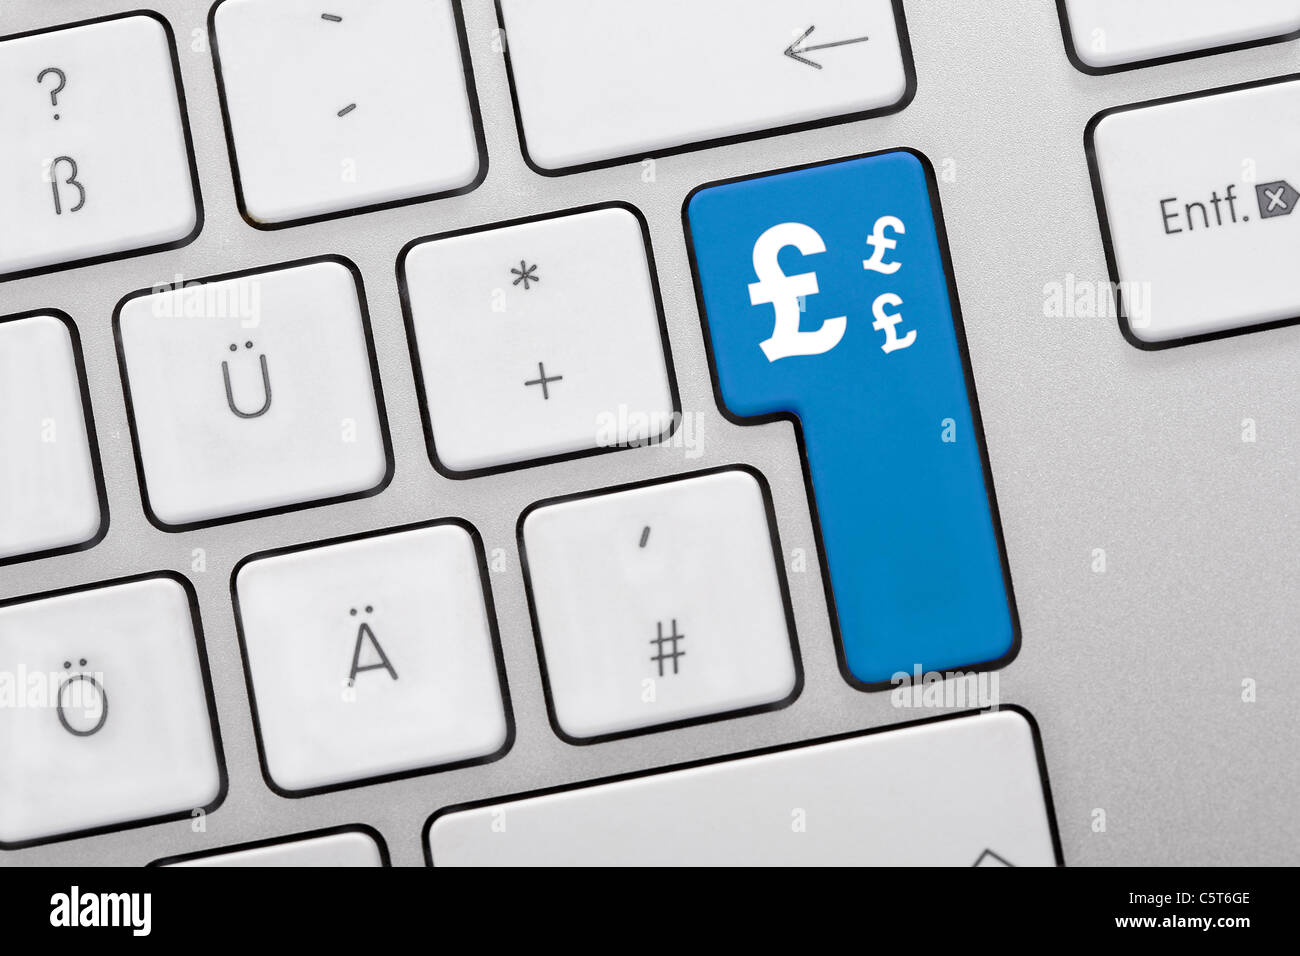 Pound Sign Key Stock Photos Pound Sign Key Stock Images Alamy